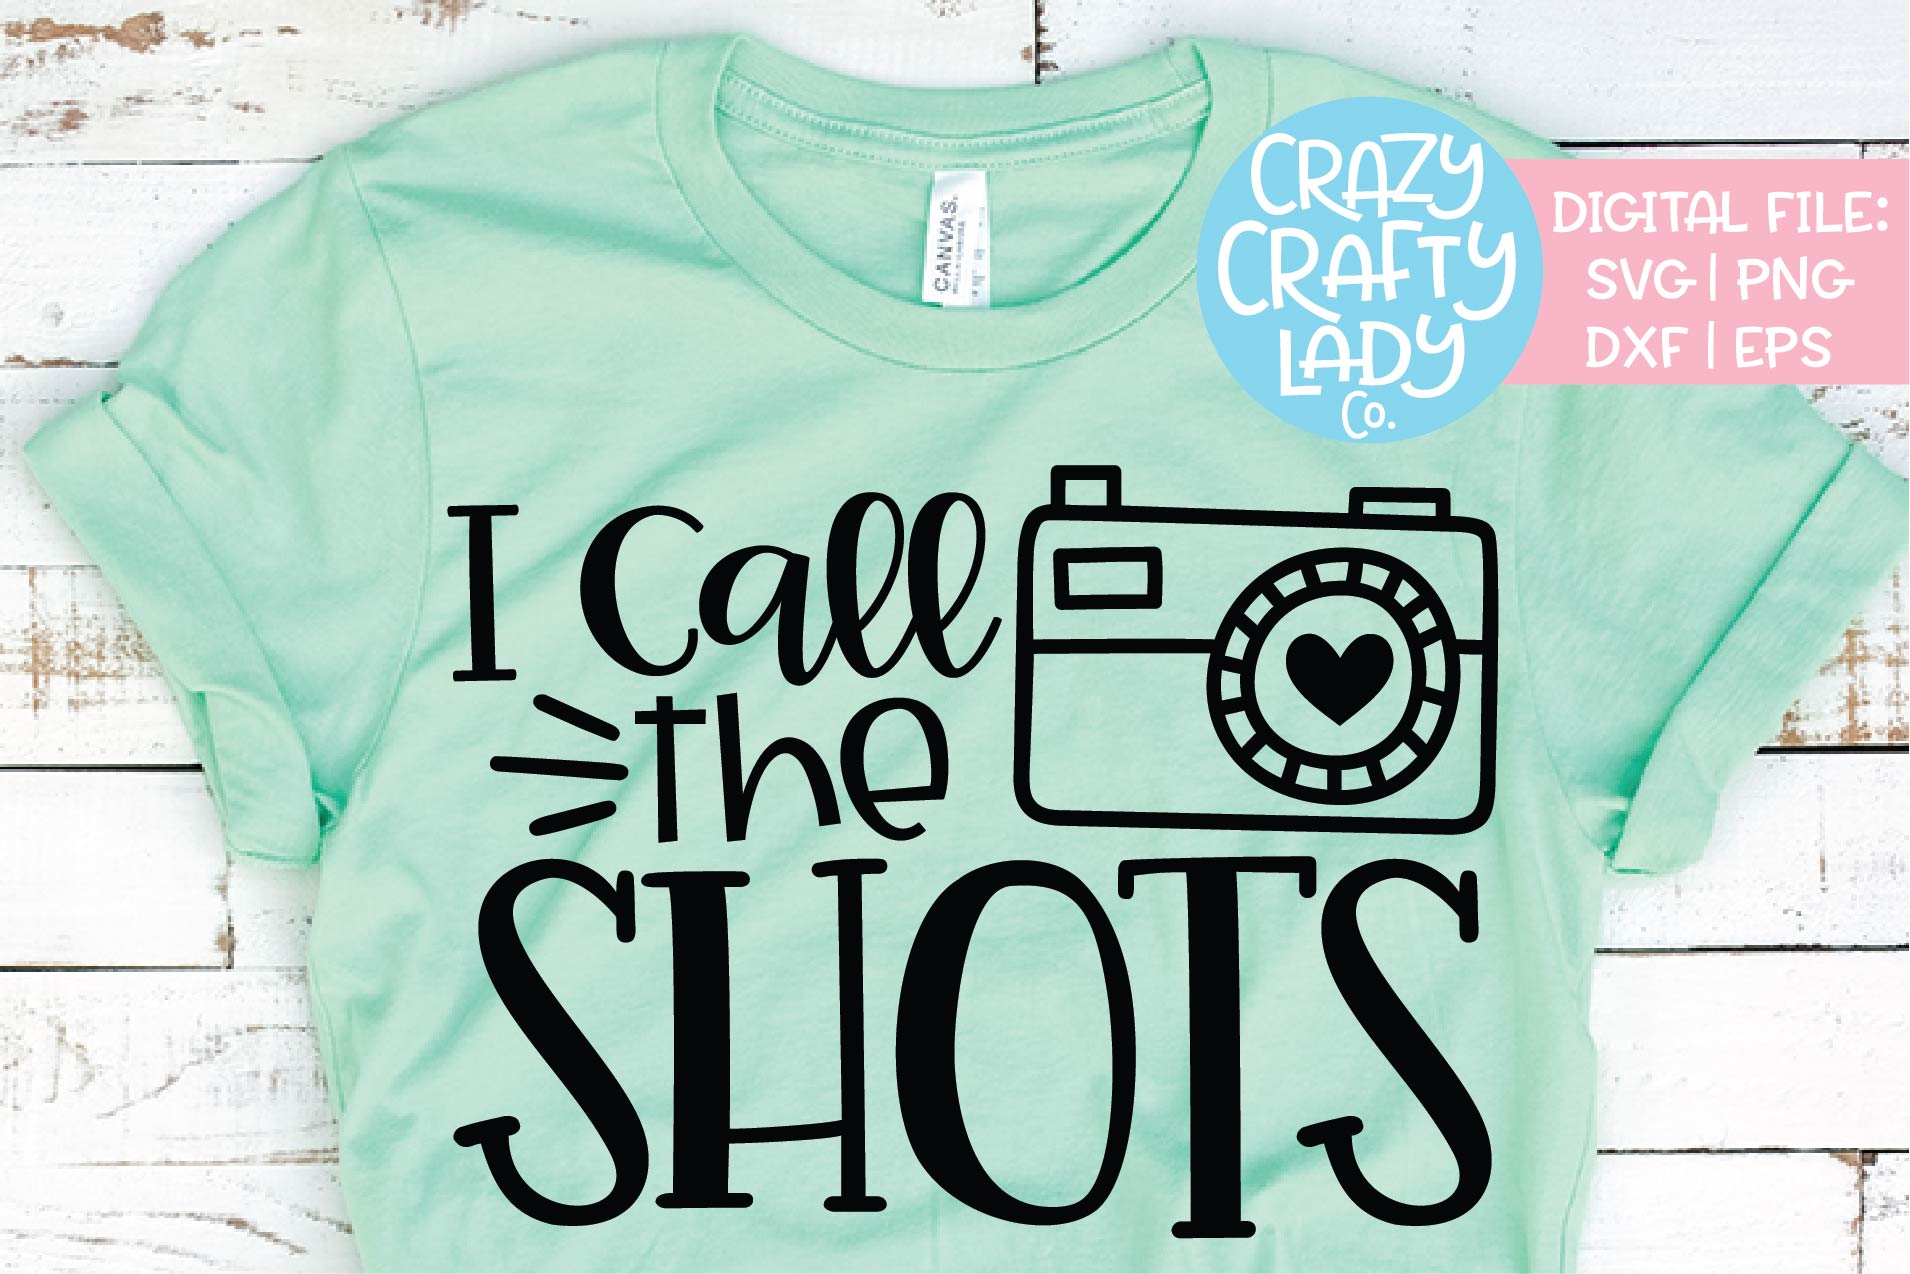 I Call the Shots Photography SVG DXF EPS PNG Cut File example image 1